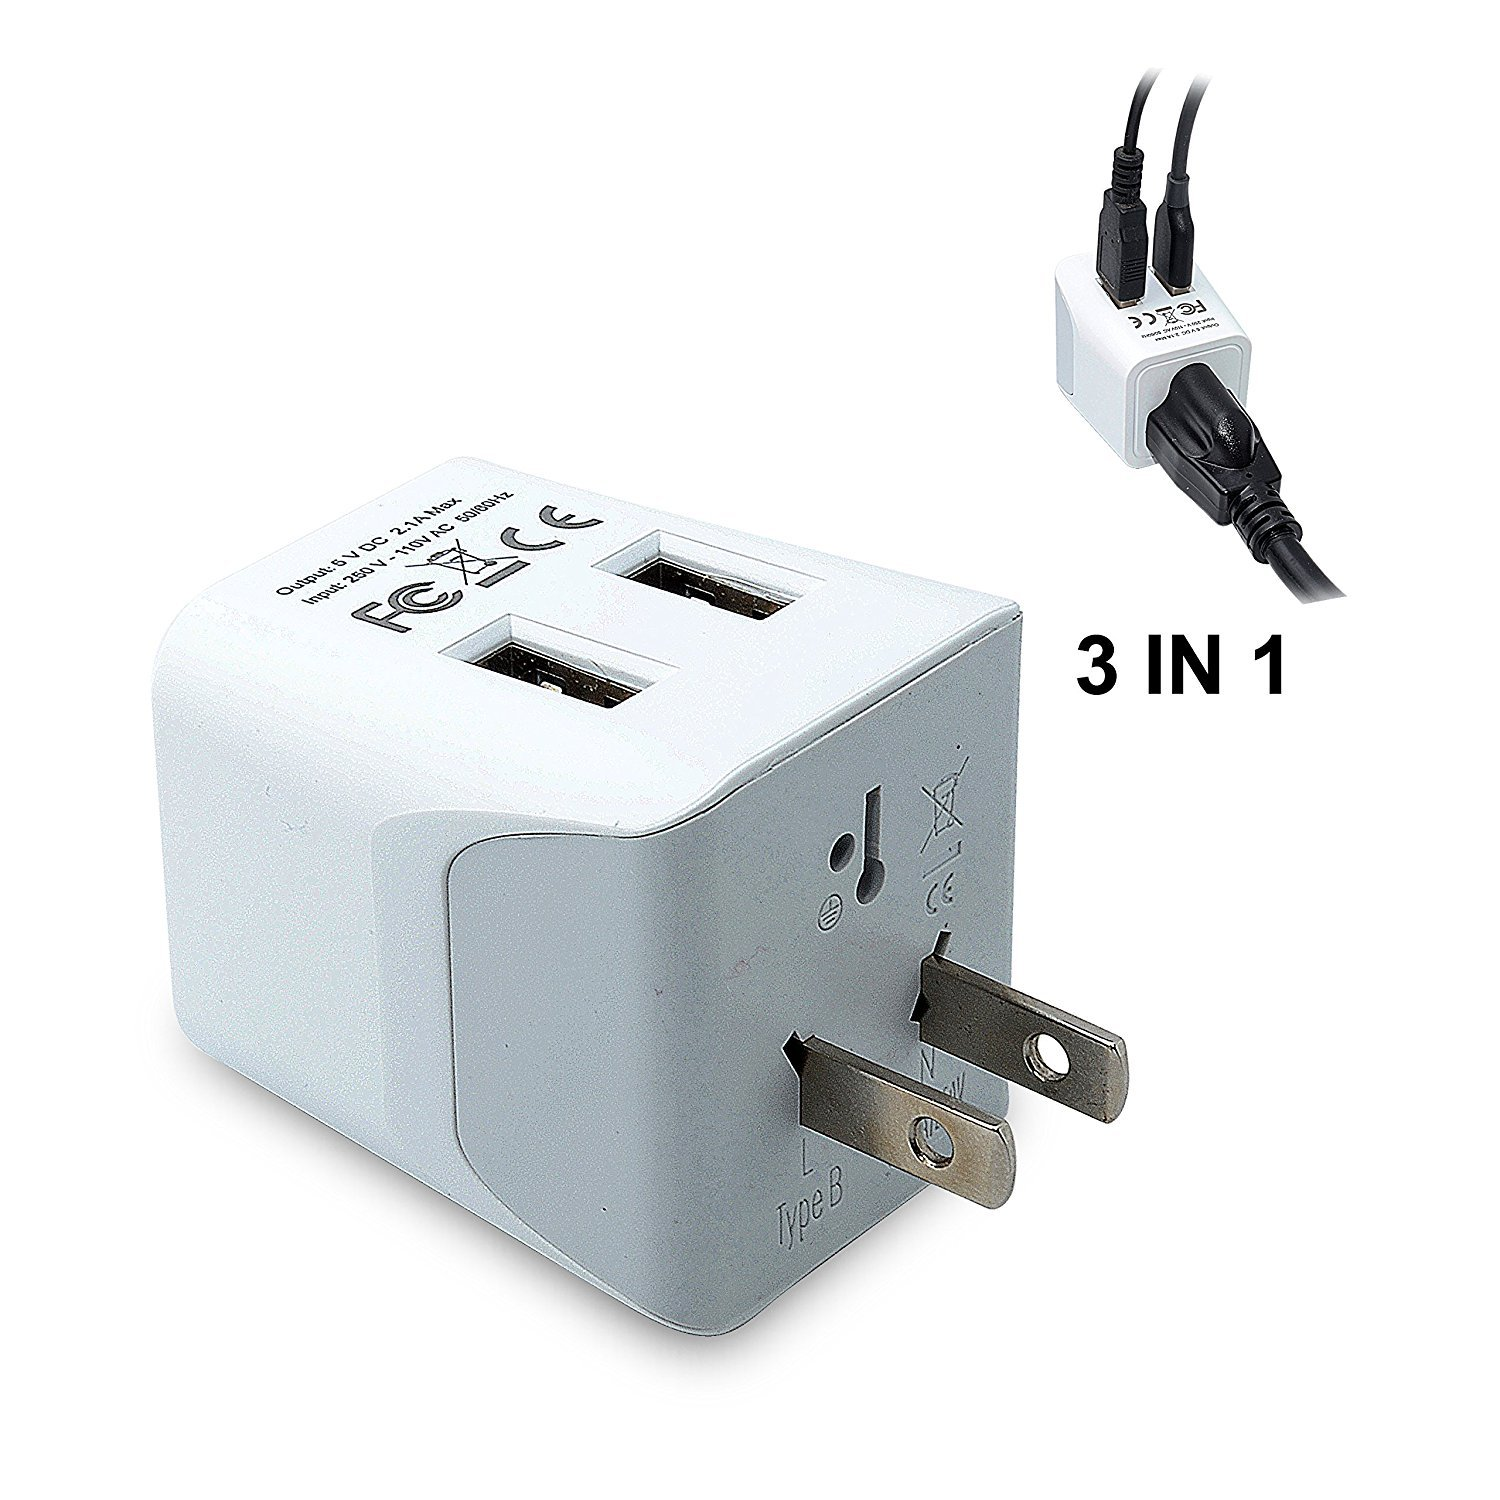 Ceptics CTU-6 USA to Japan, Philippines Travel Adapter Plug with Dual USB - Type A - Ultra Compact